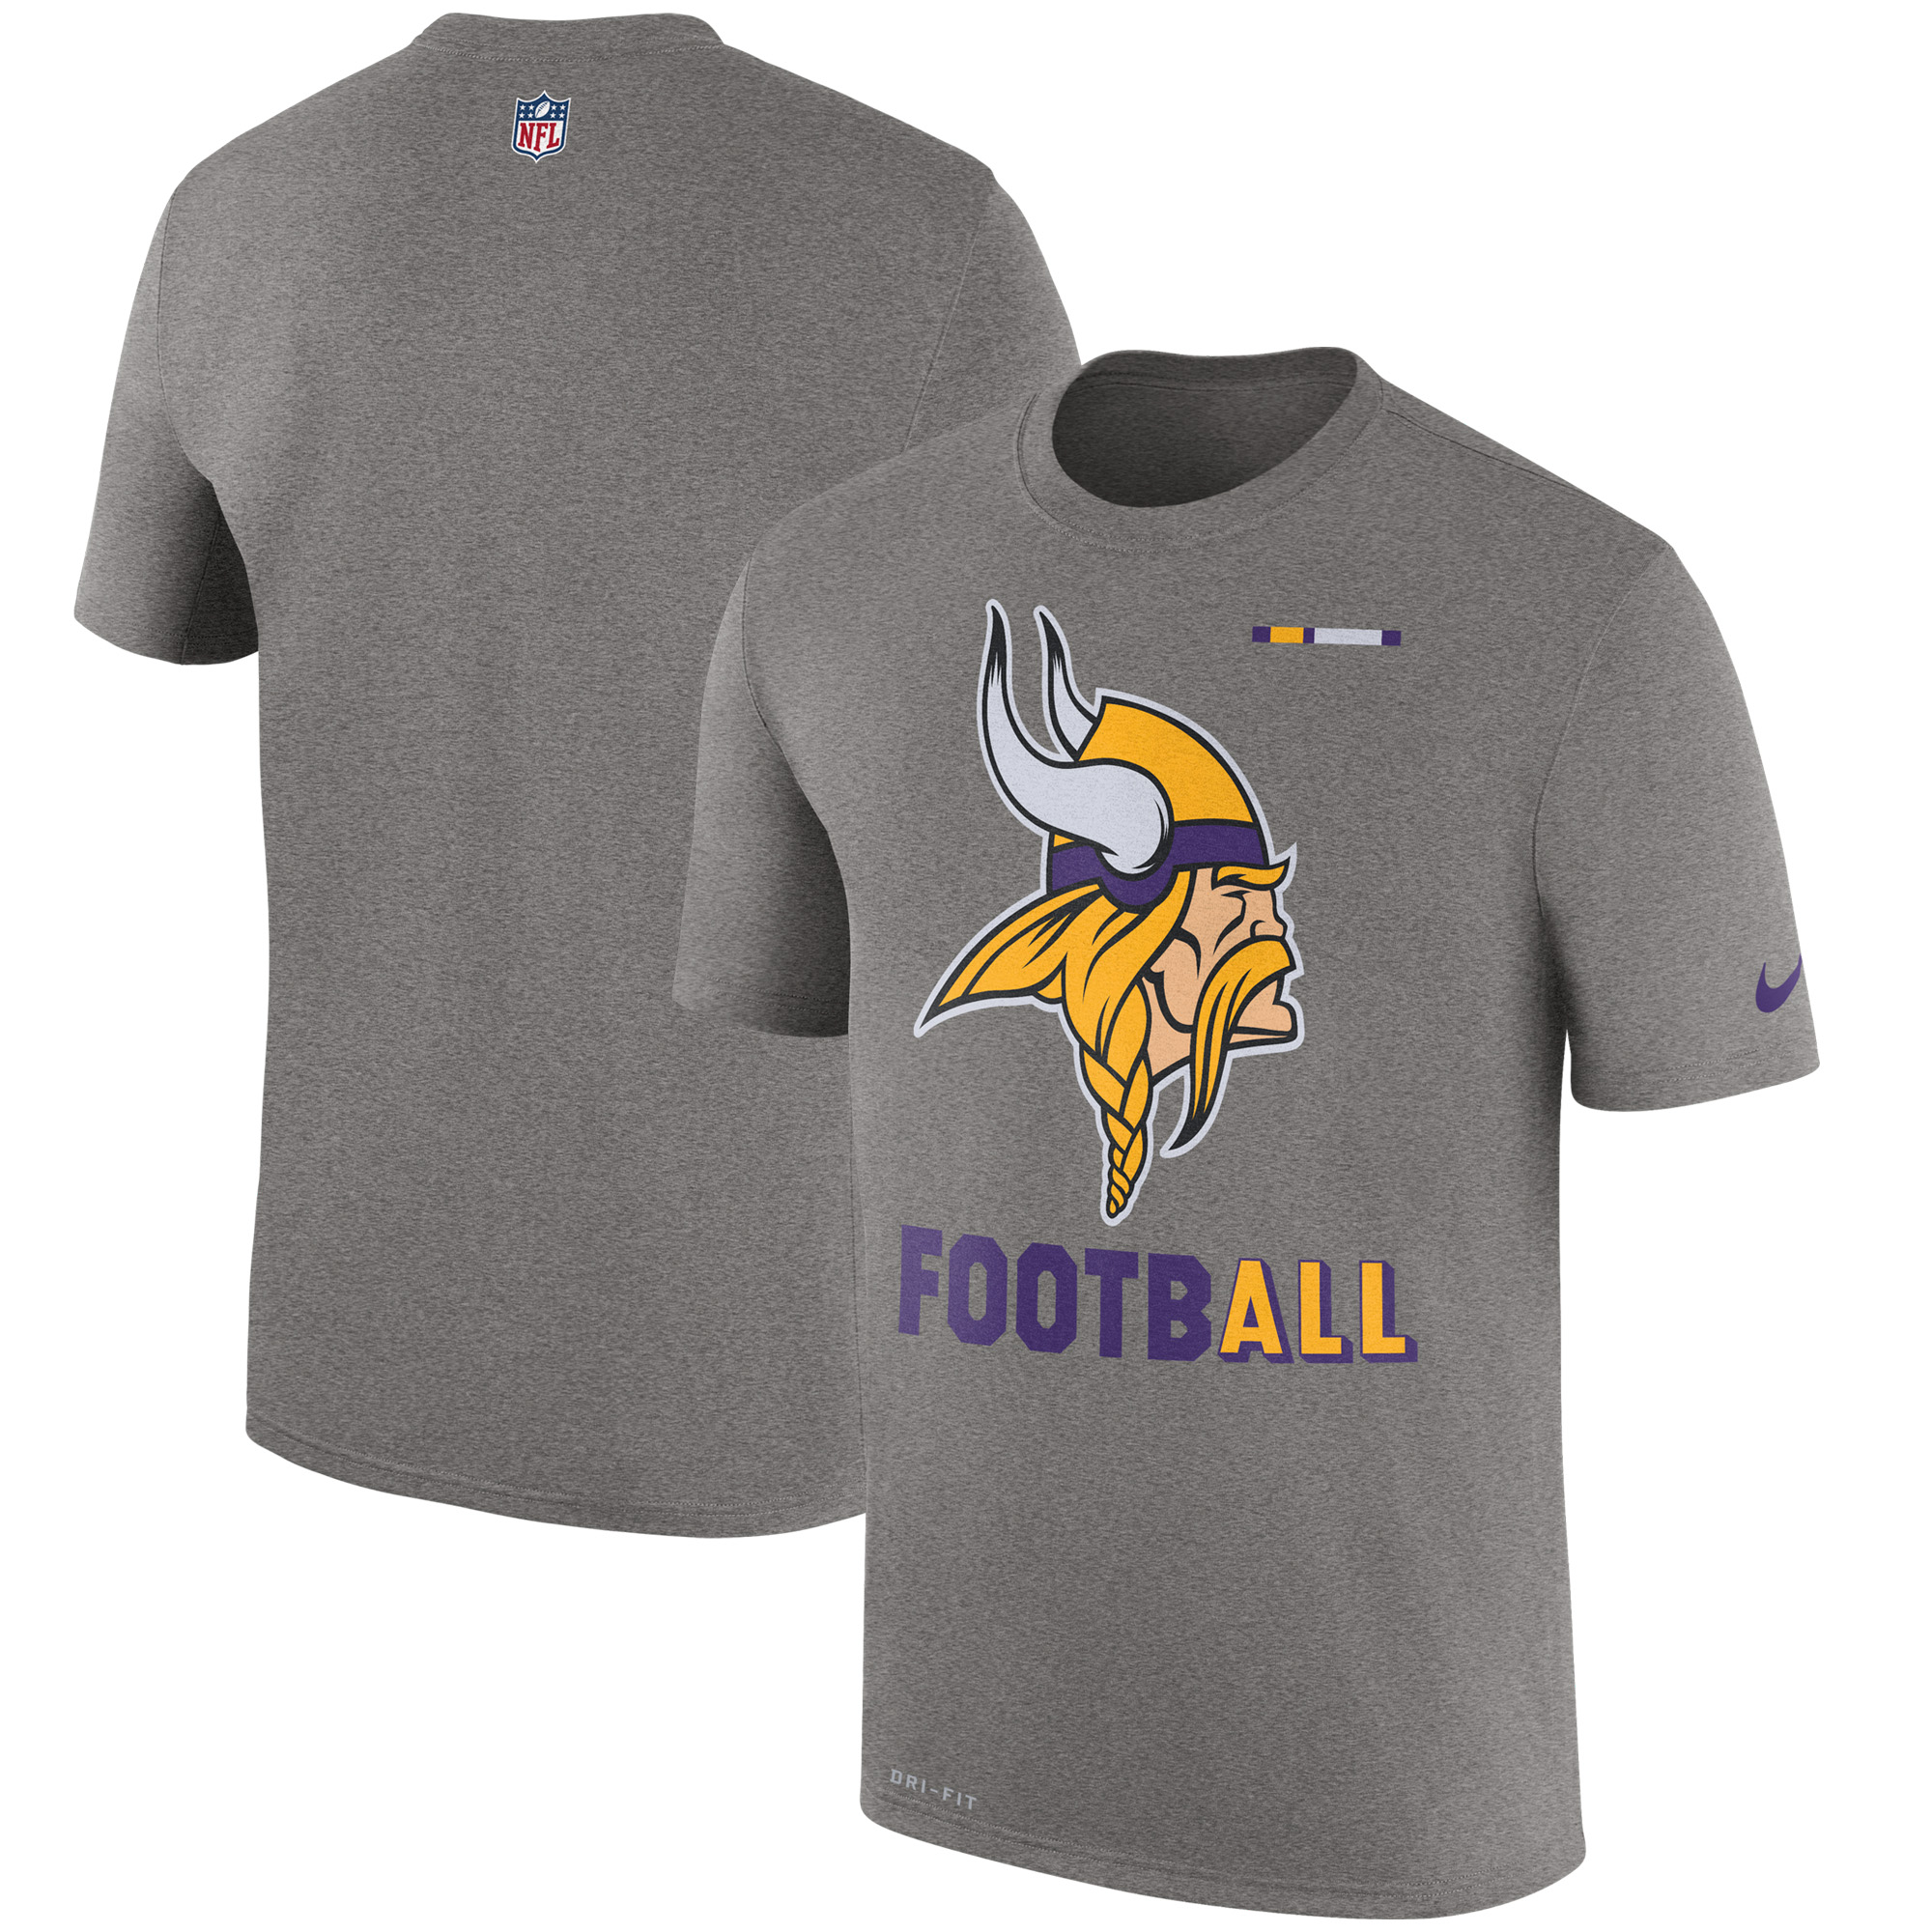 Minnesota Vikings Nike Sideline Legend Football Performance T-Shirt - Charcoal